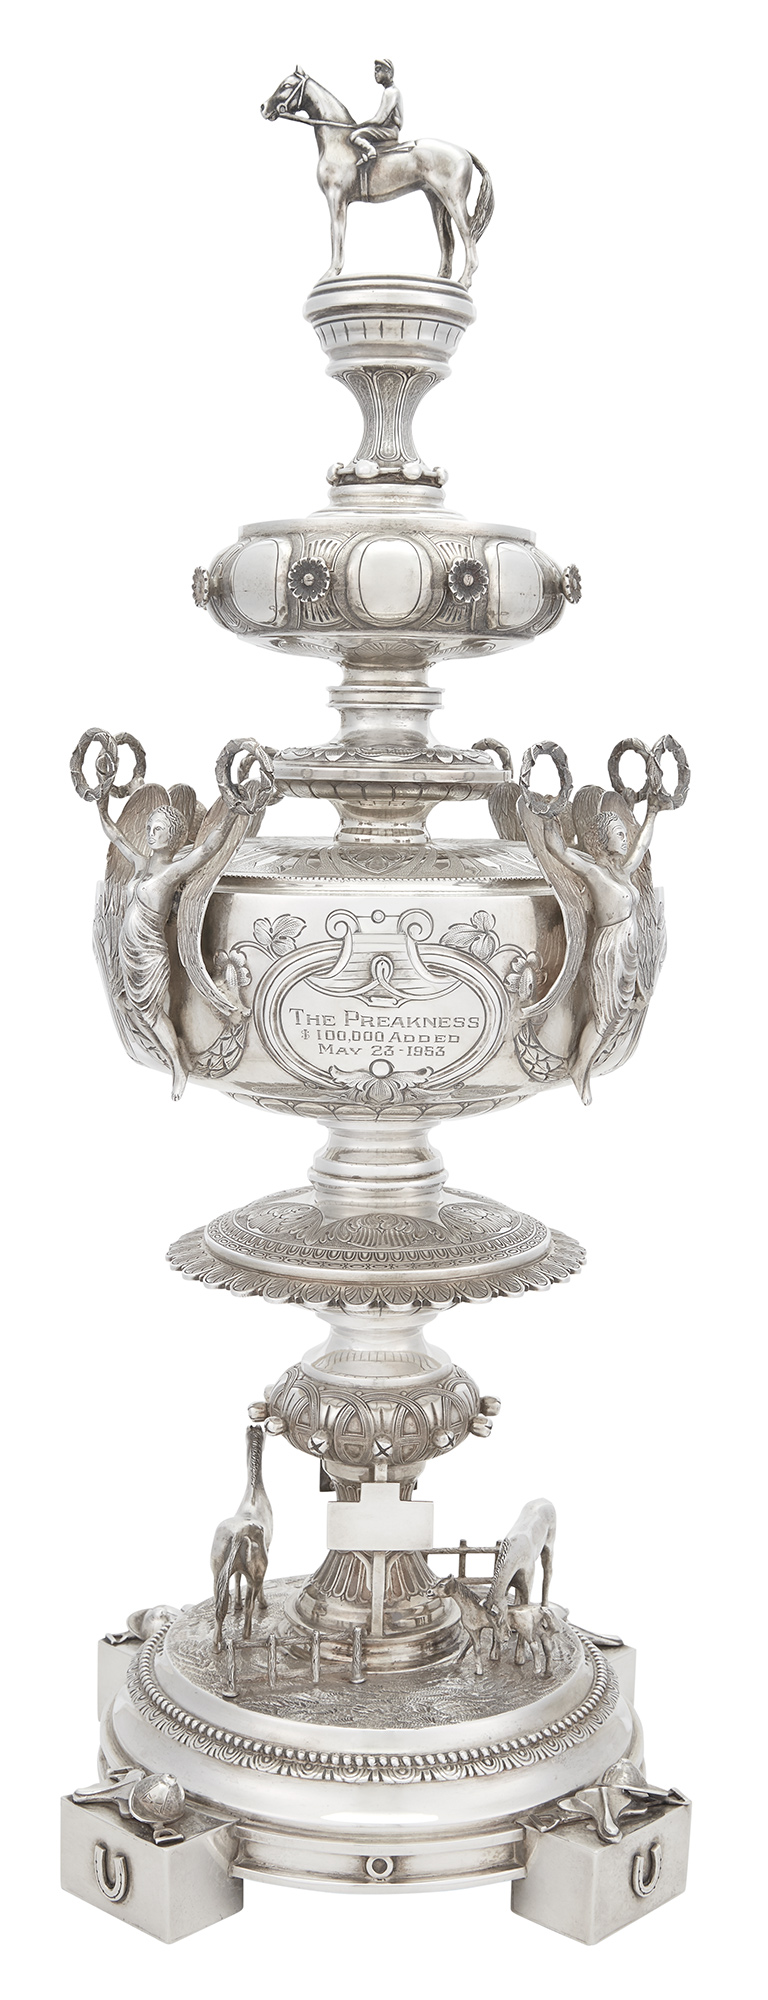 Lot image - Important American Sterling Silver Trophy Won by Alfred Gwynne Vanderbilt, Jrs Native Dancer in the 1953 Preakness Stakes